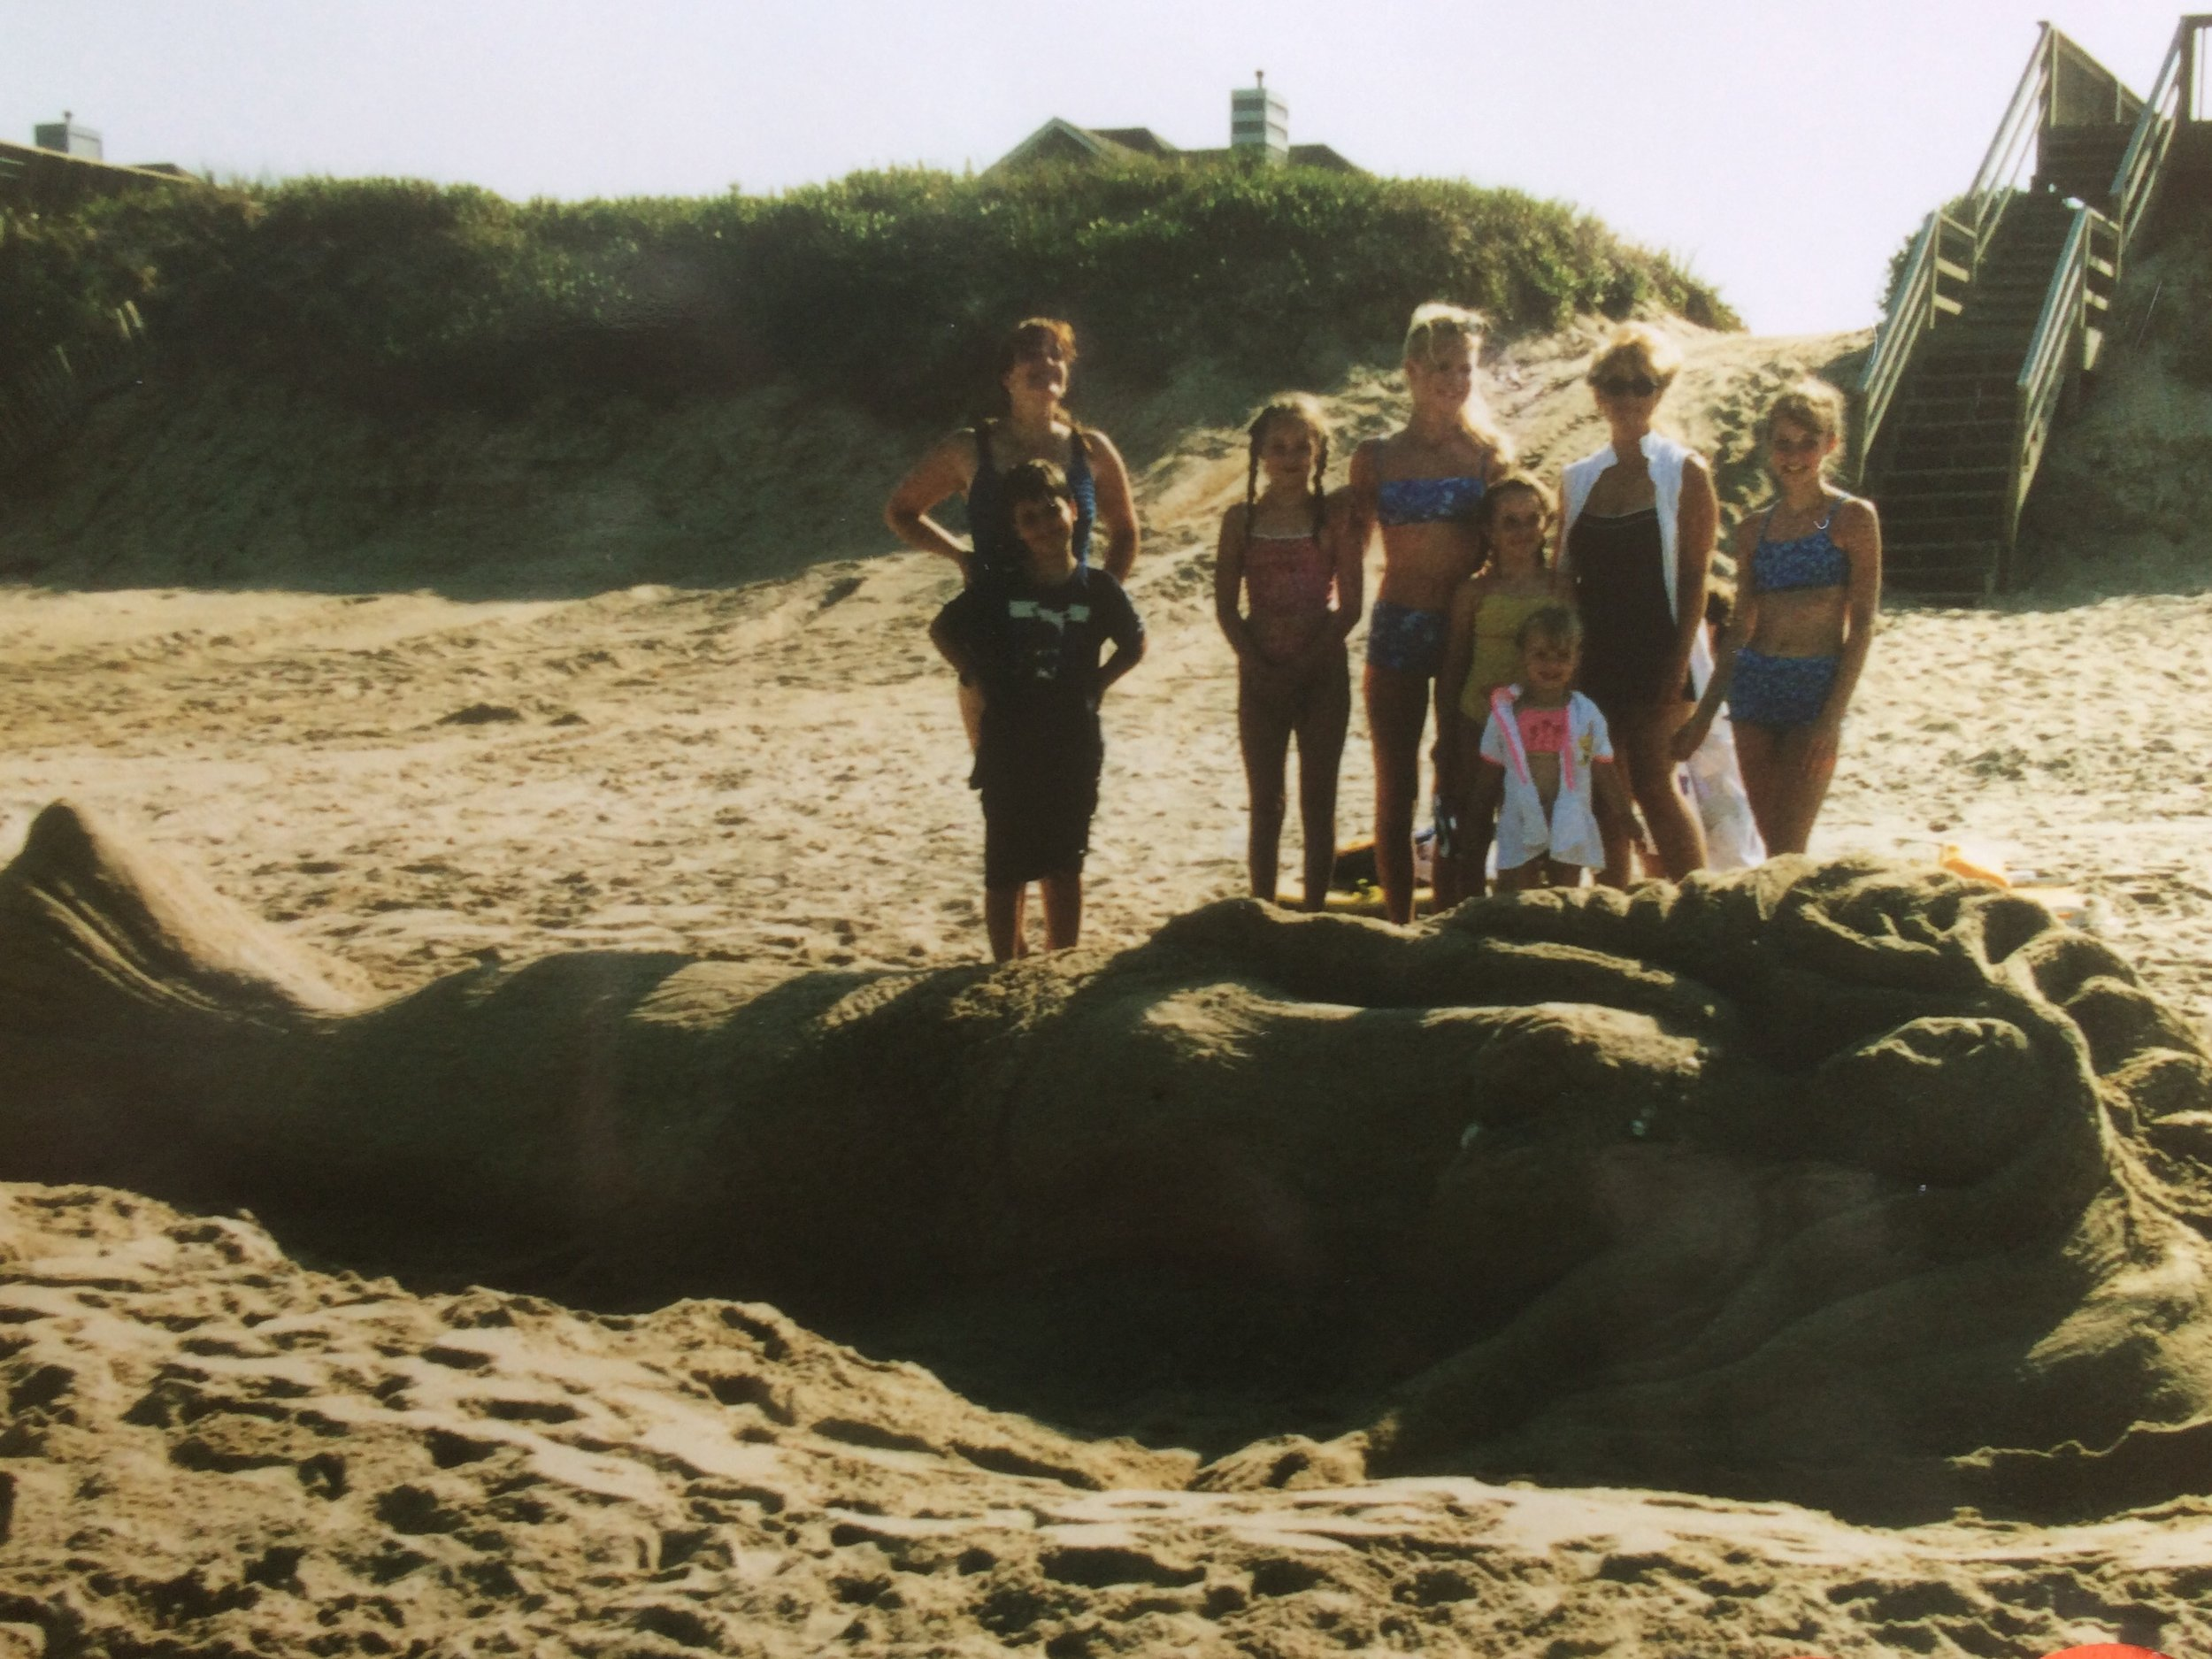 No beach trip was complete without our family building some huge sand sculpture!